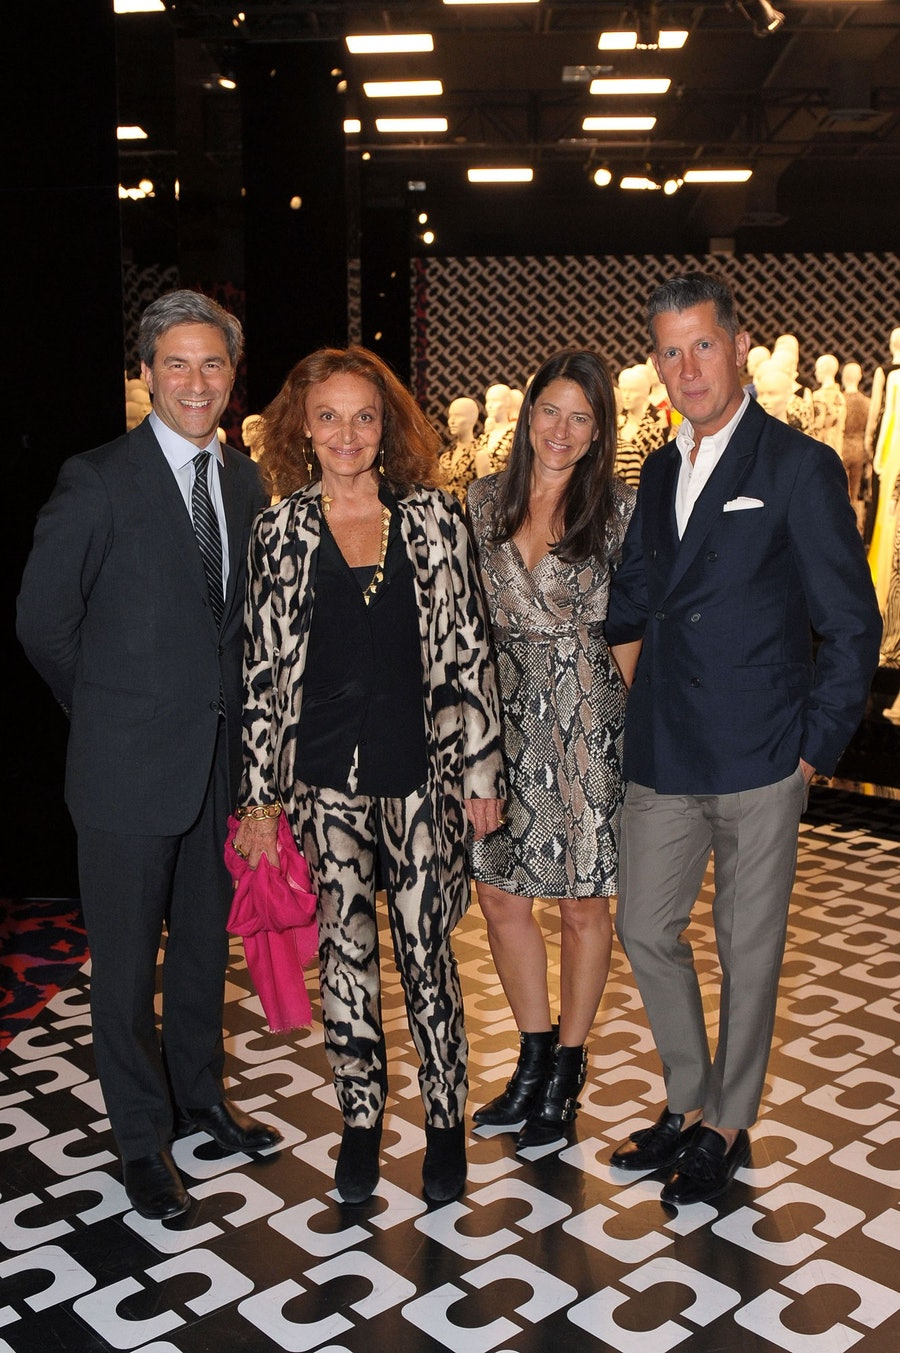 Michael Govan, Diane von Furstenberg, Katherine Ross, and Stefano Tonchi. Photo by Christina Edwards/ PatrickMcMullan.com.